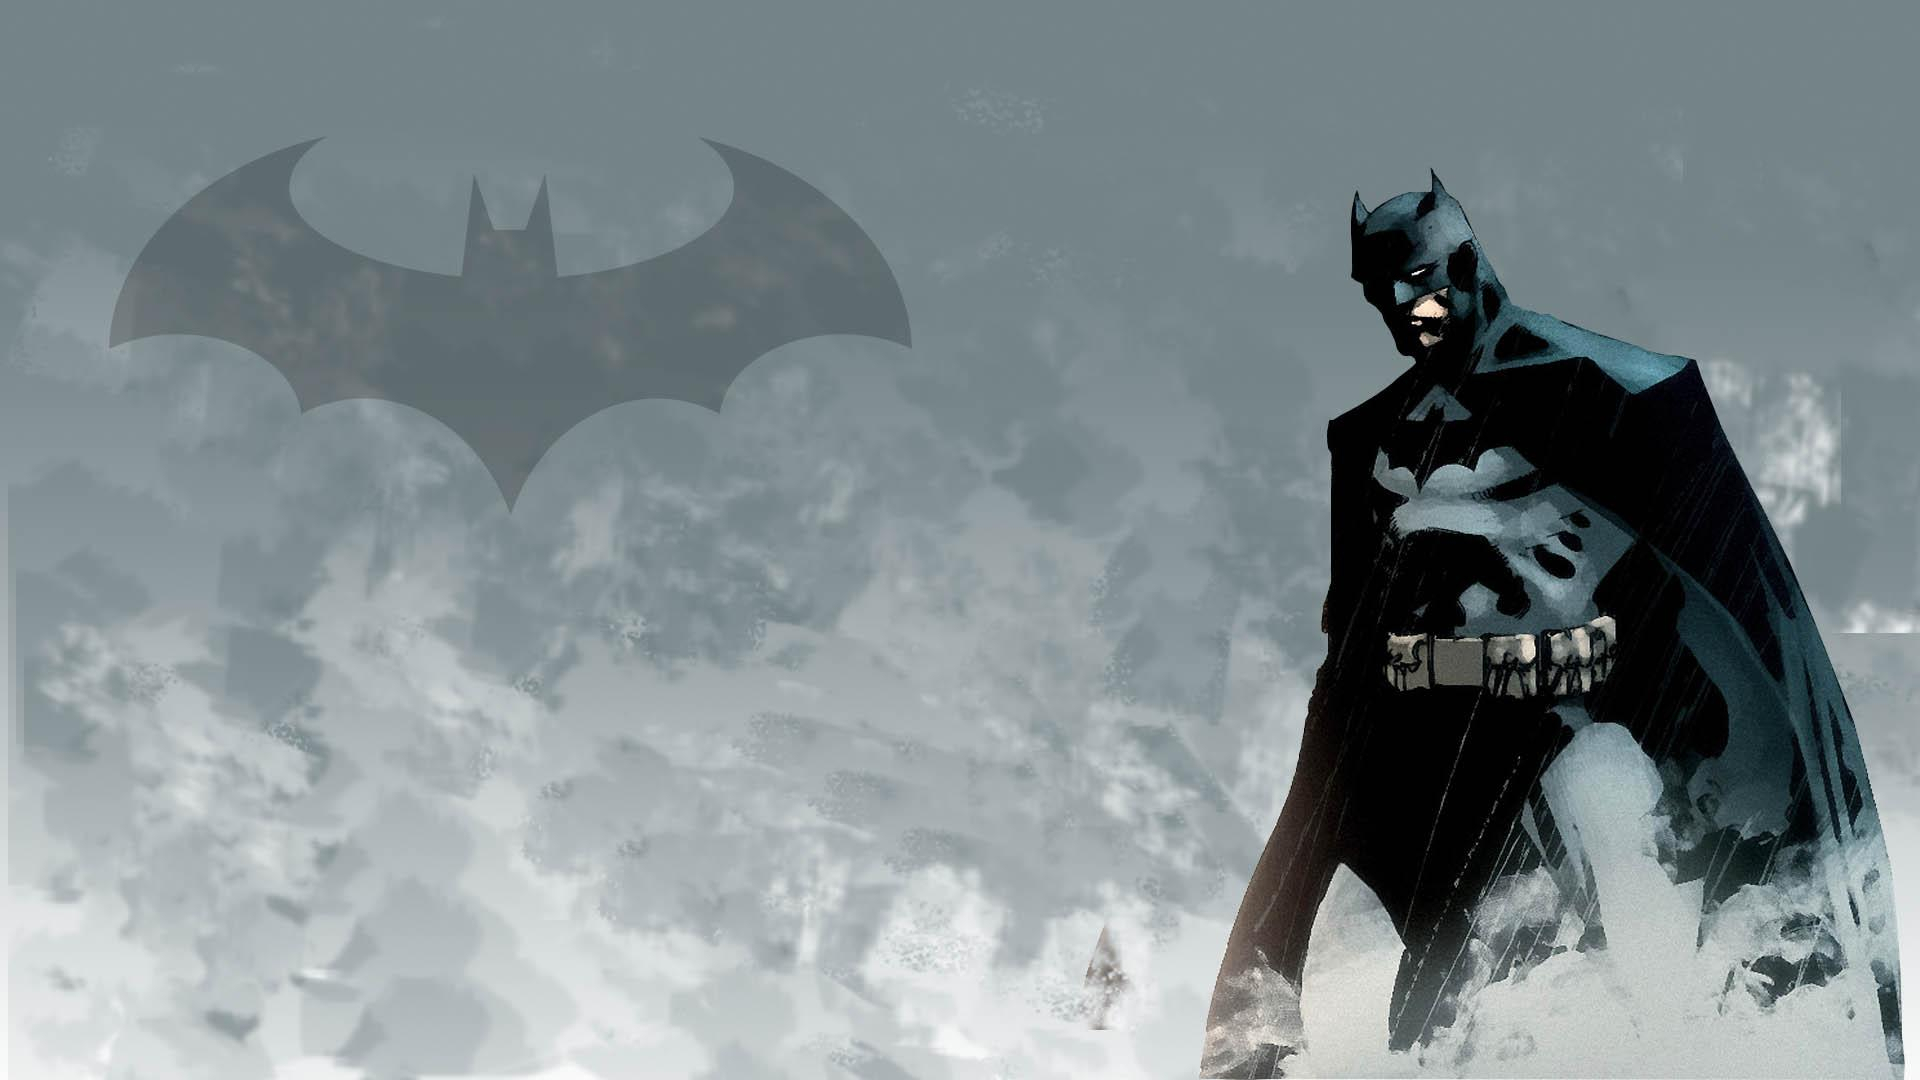 my batman jim lee wallpaper 1920x1080 : comicwalls